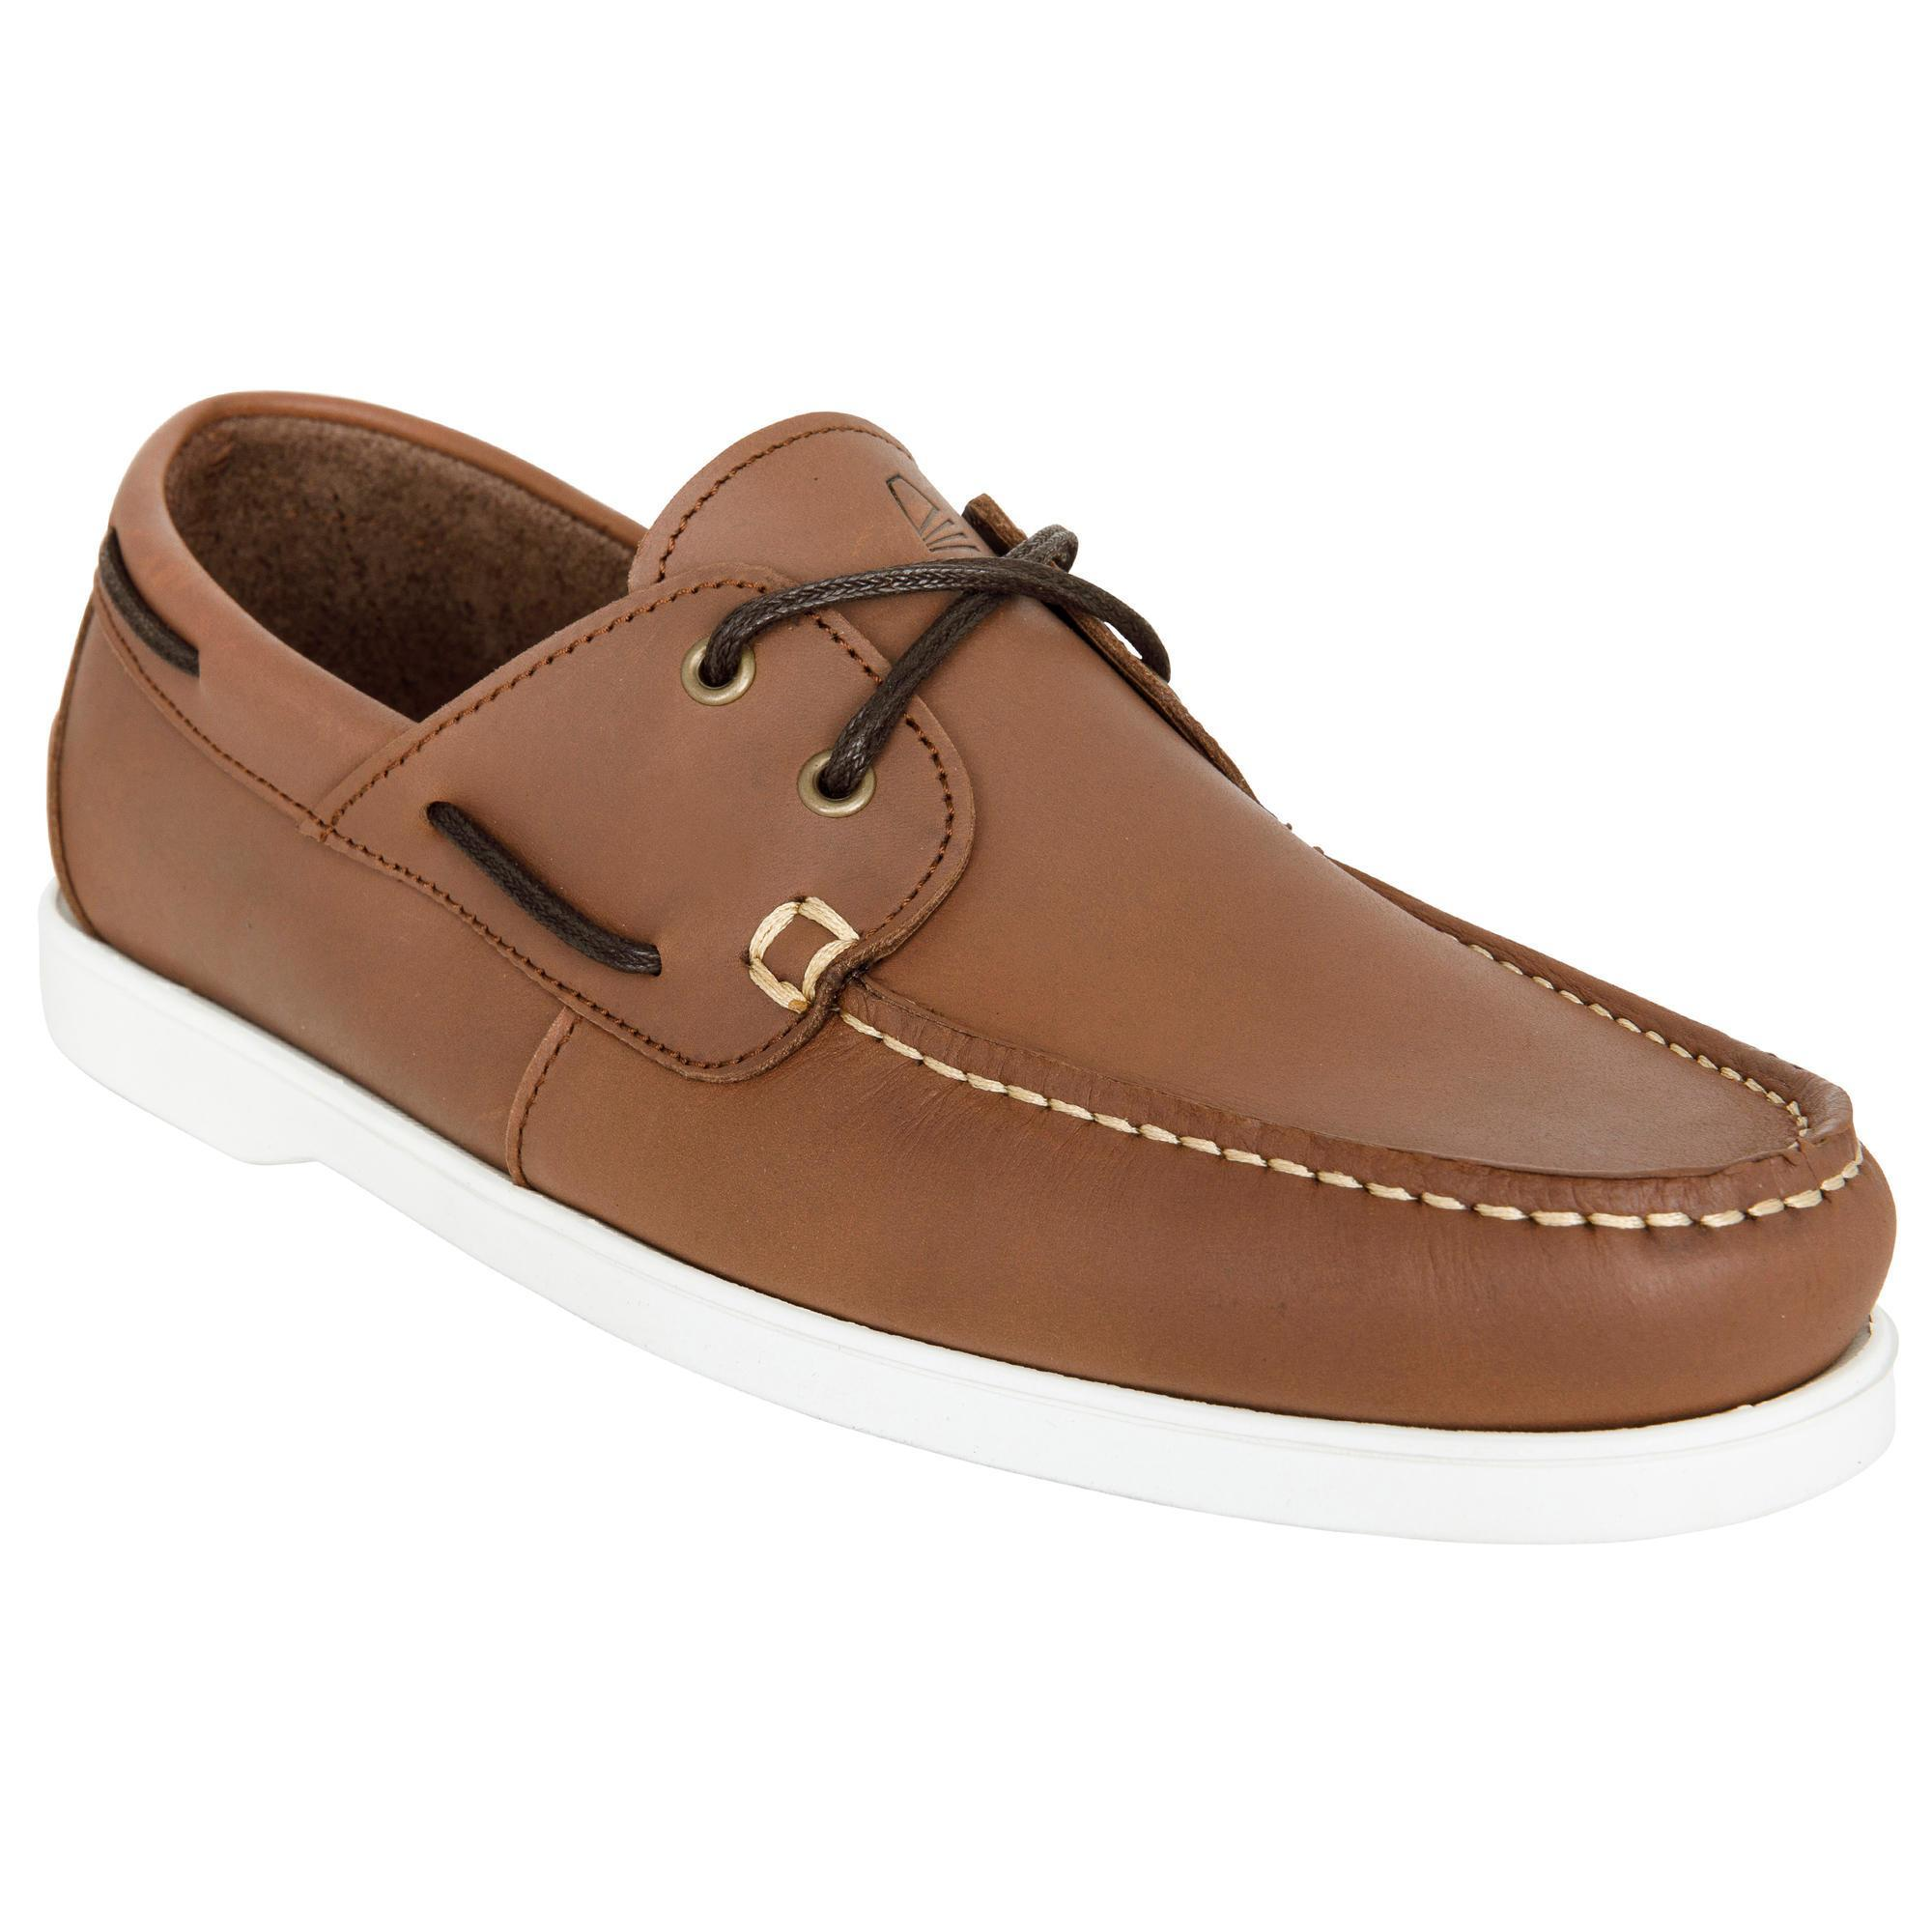 Cruise 500 Men's Leather Boat Shoes